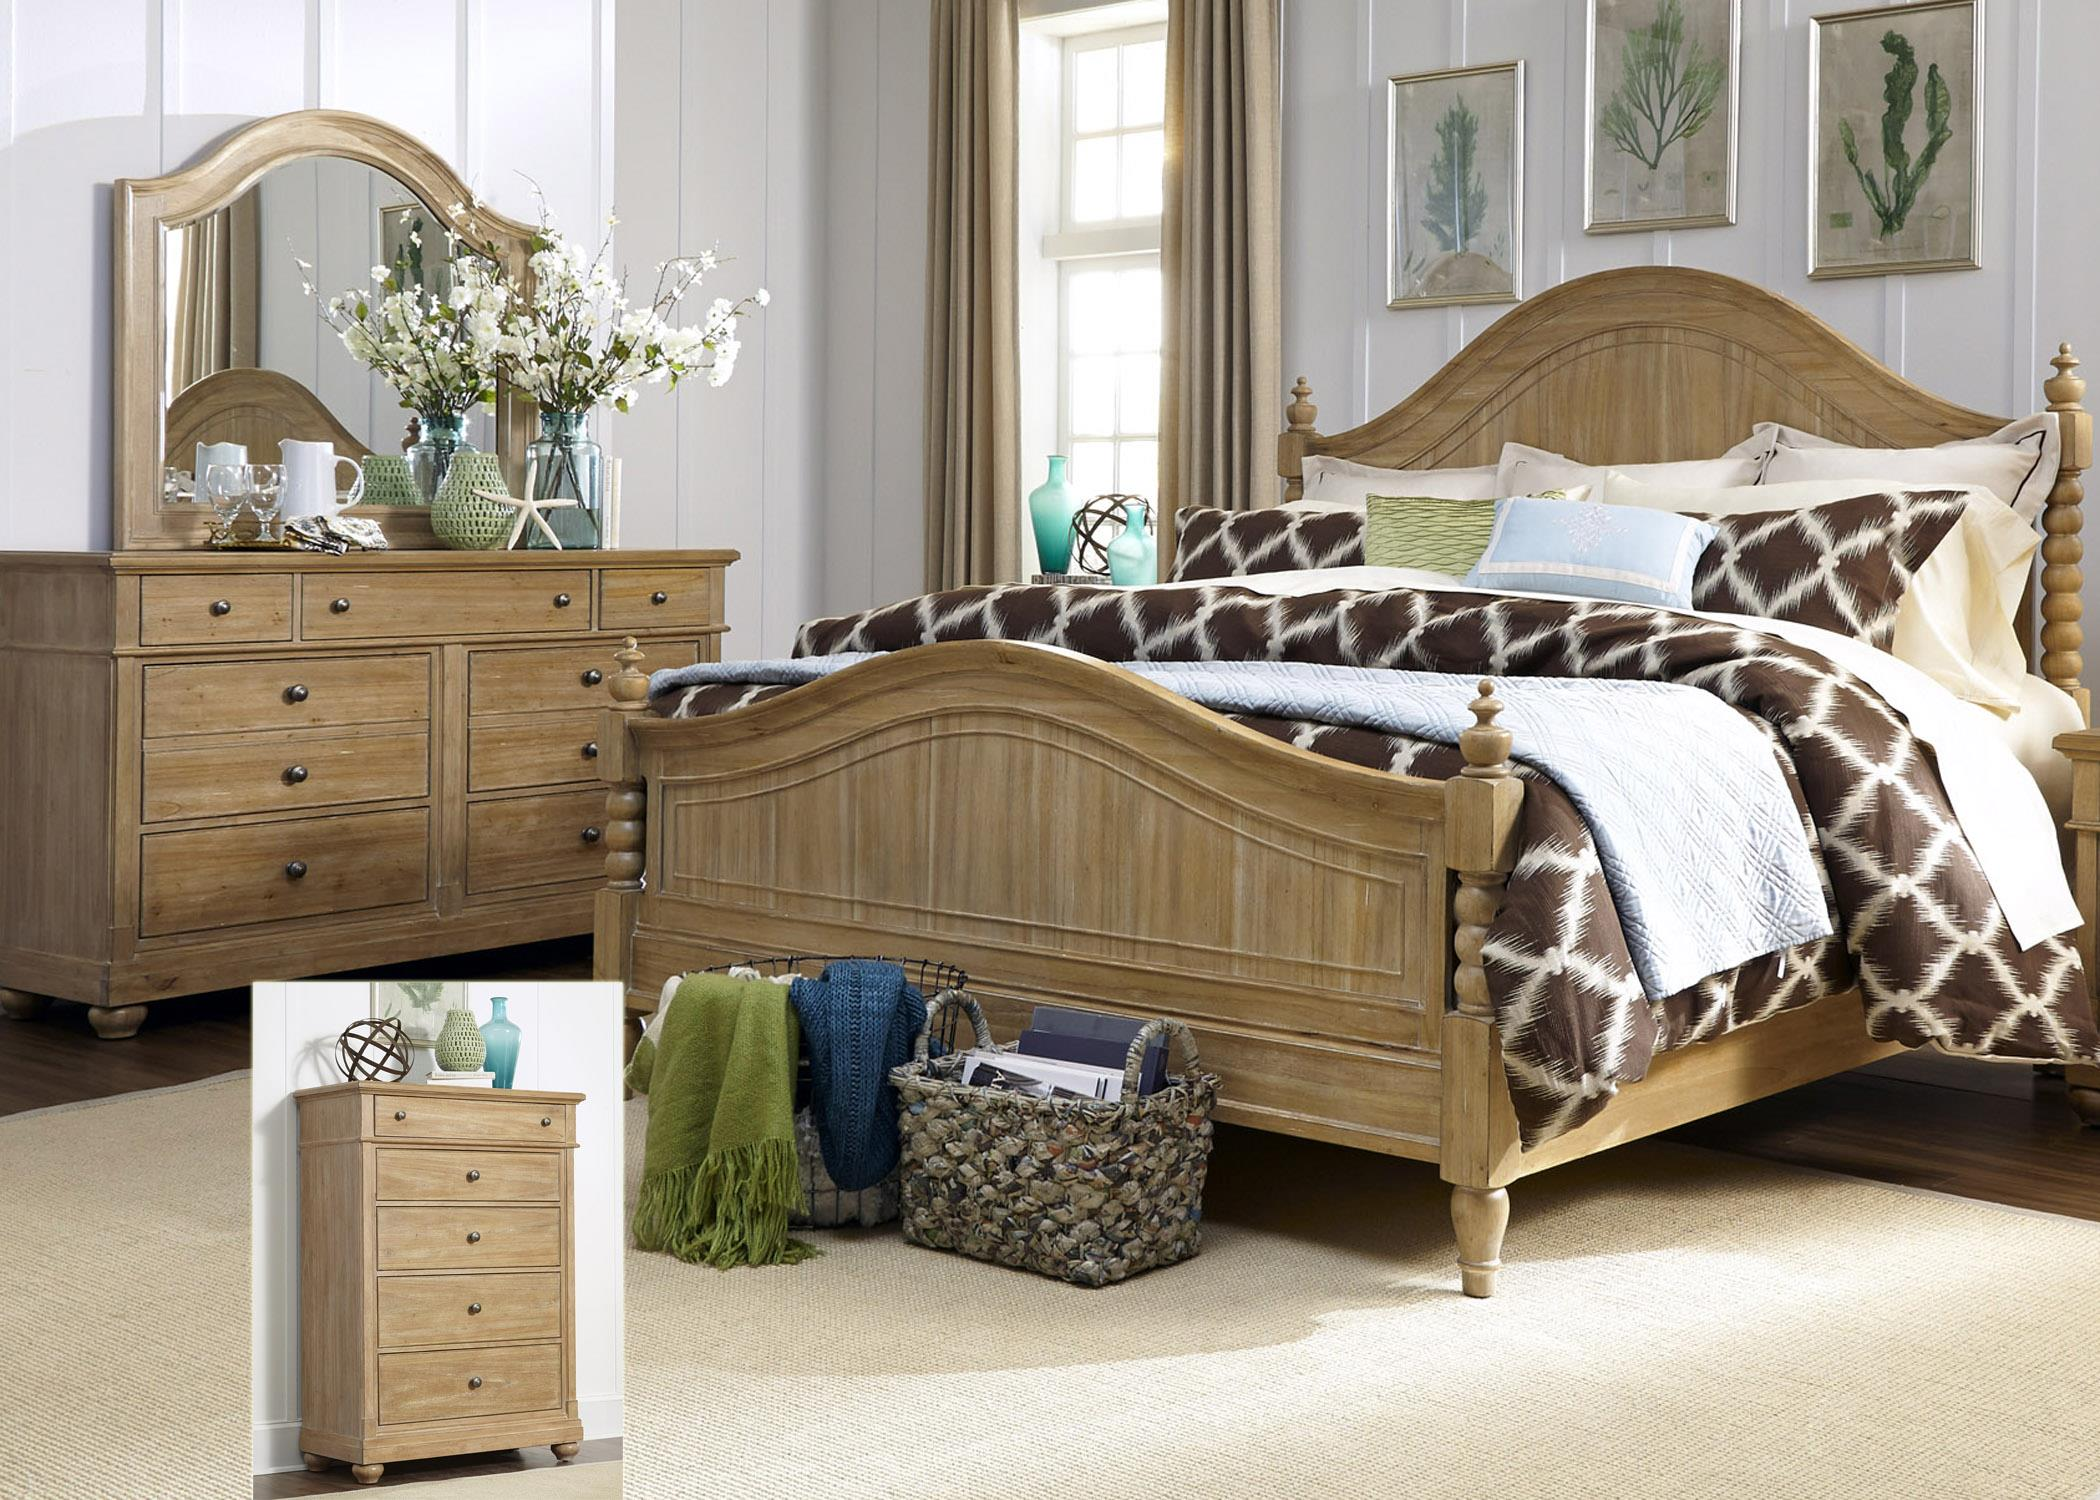 Liberty Furniture Harbor View King Bedroom Group - Item Number: 531-BR-KPSDMC